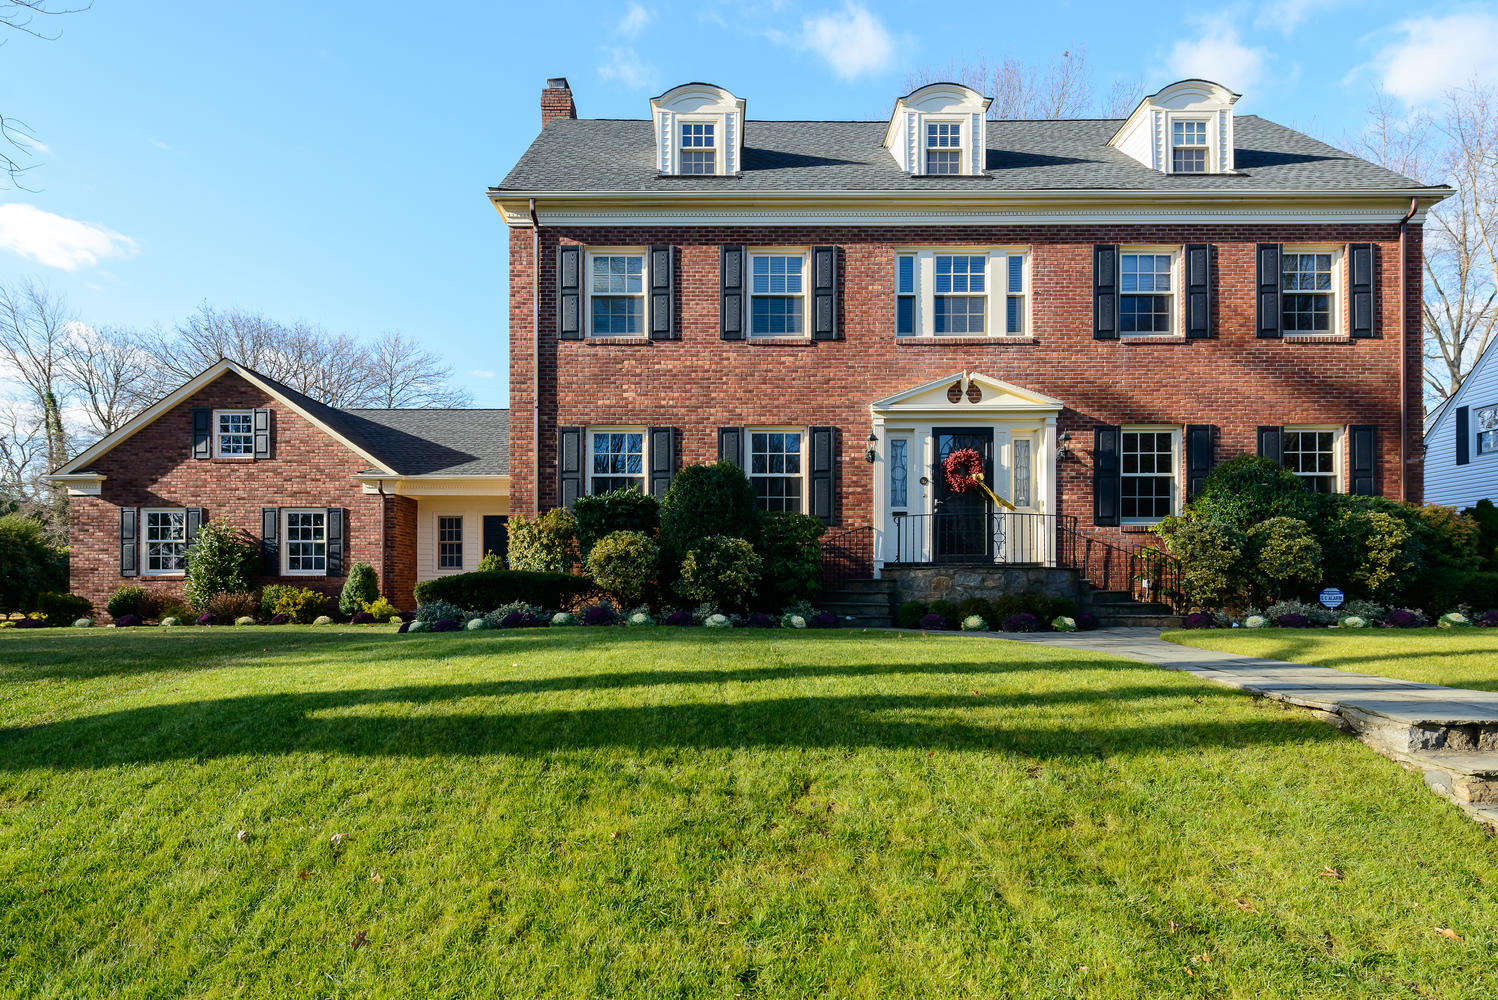 Single Family Home for Sale at Colonial 112 Arthur St Garden City, New York 11530 United States